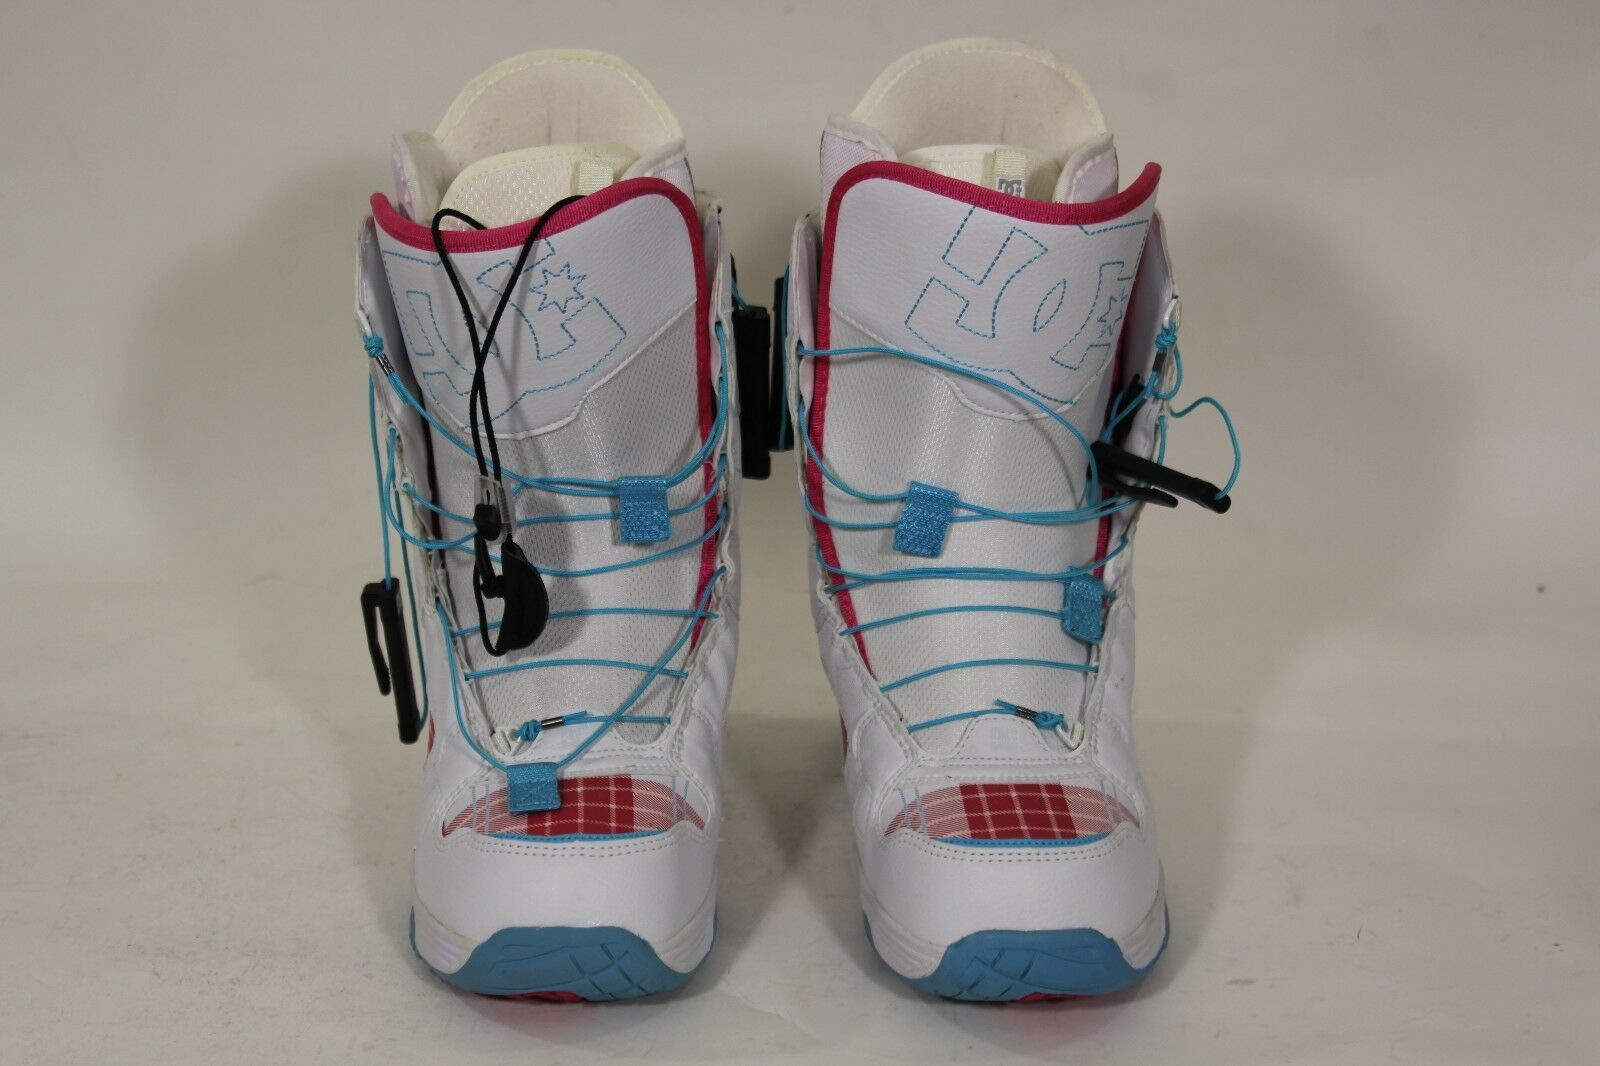 DC Siloh Womens Snowboard Boots US  7 or White Ruby SB23  clearance